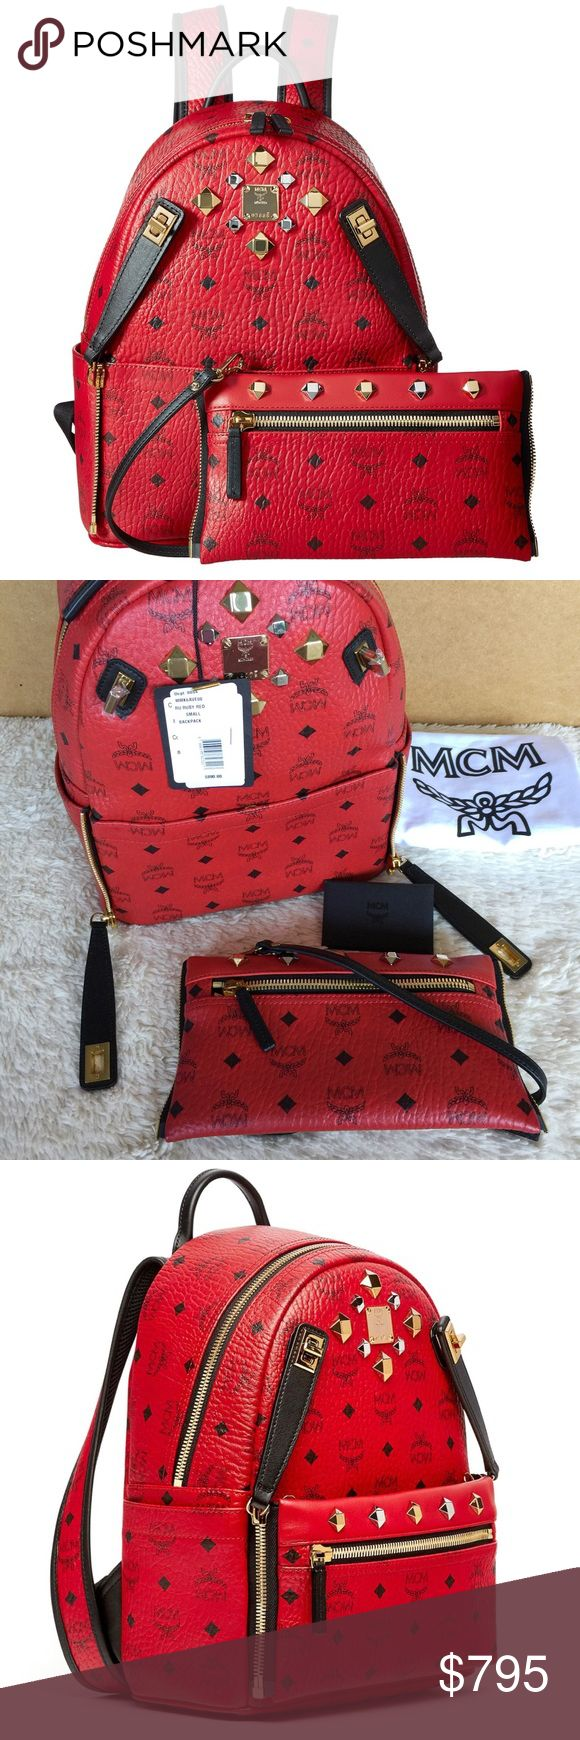 NEW MCM DUAL STARK BACKPACK Authentic. Made in Italy. Brand new with tags. This backpack has authenticity card, care books, and dust bag. PLEASE NO TRADE. THE PRICE IS FIRM. Small Dual Stark Backpack in Visetos coated canvas with leather trim and stud embellishments Color: Ruby Red Gold-toned hardware Single top handle Adjustable shoulder straps Nappa PU lining Detachable front zipped pouch with strap Exterior zipped pocket 2 interior pockets Coated Canvas , Pu body Coated Canvas /leather…